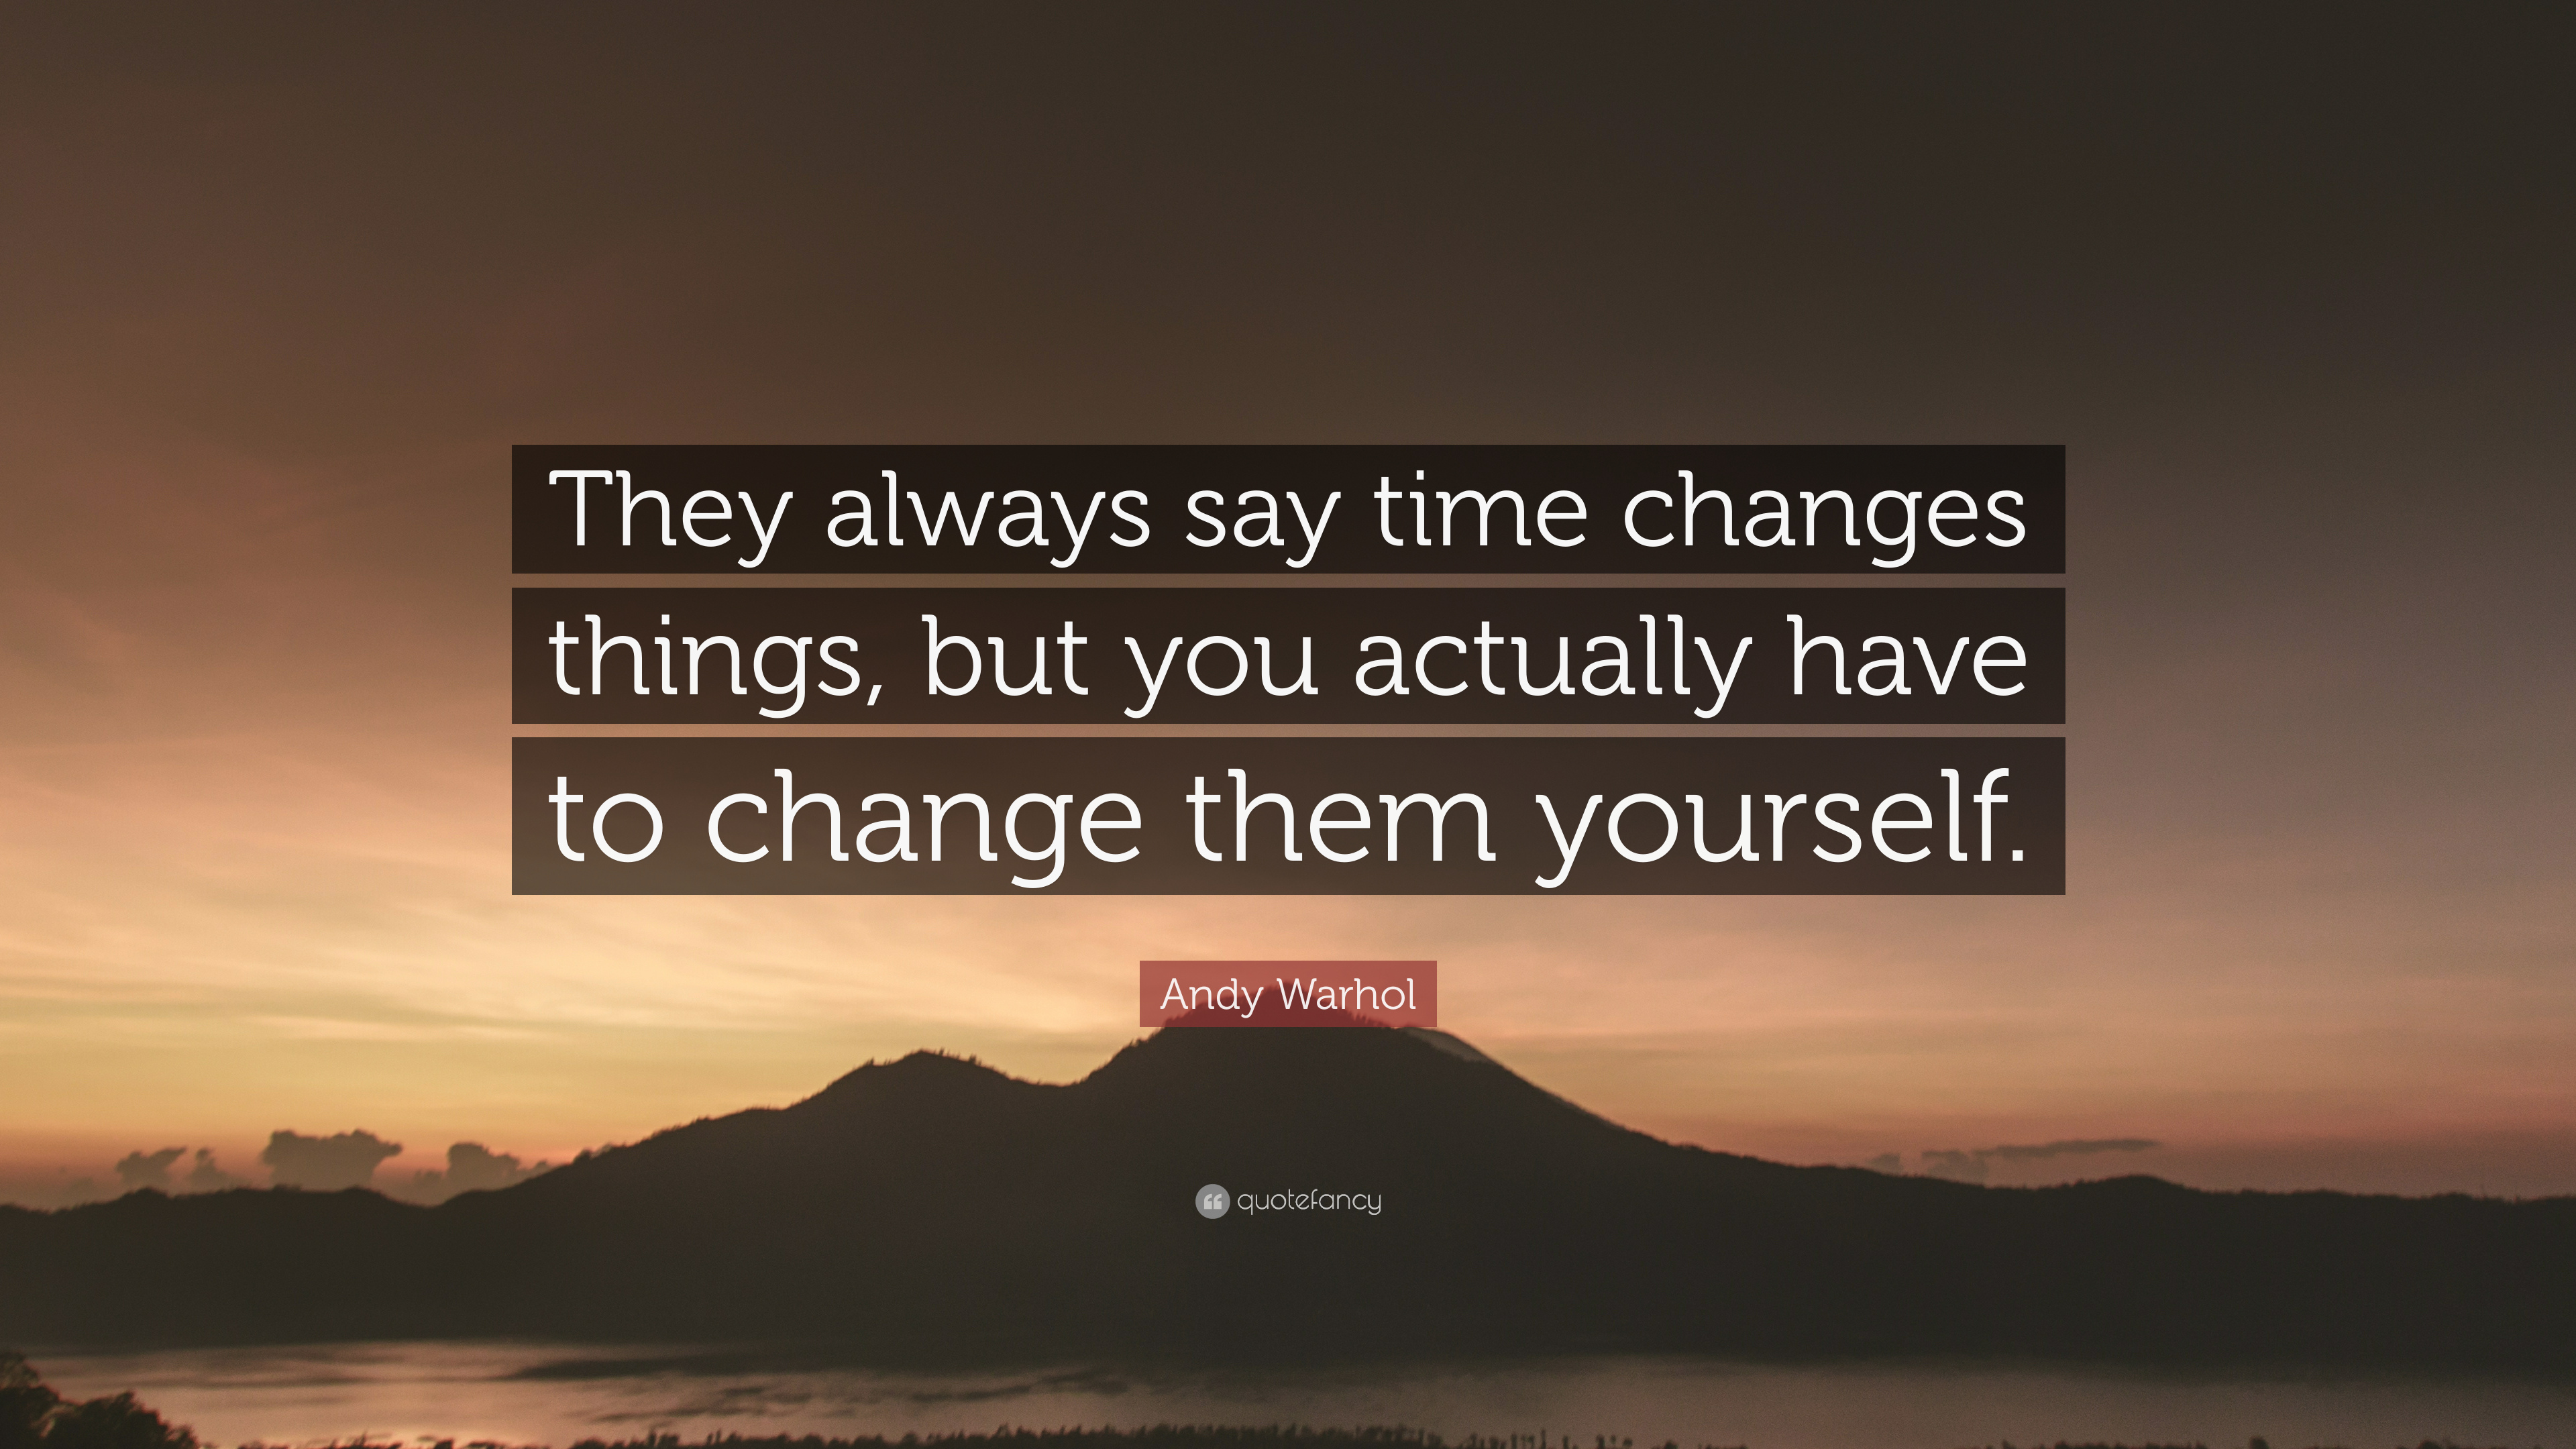 Andy Warhol Quote: They always say time changes things